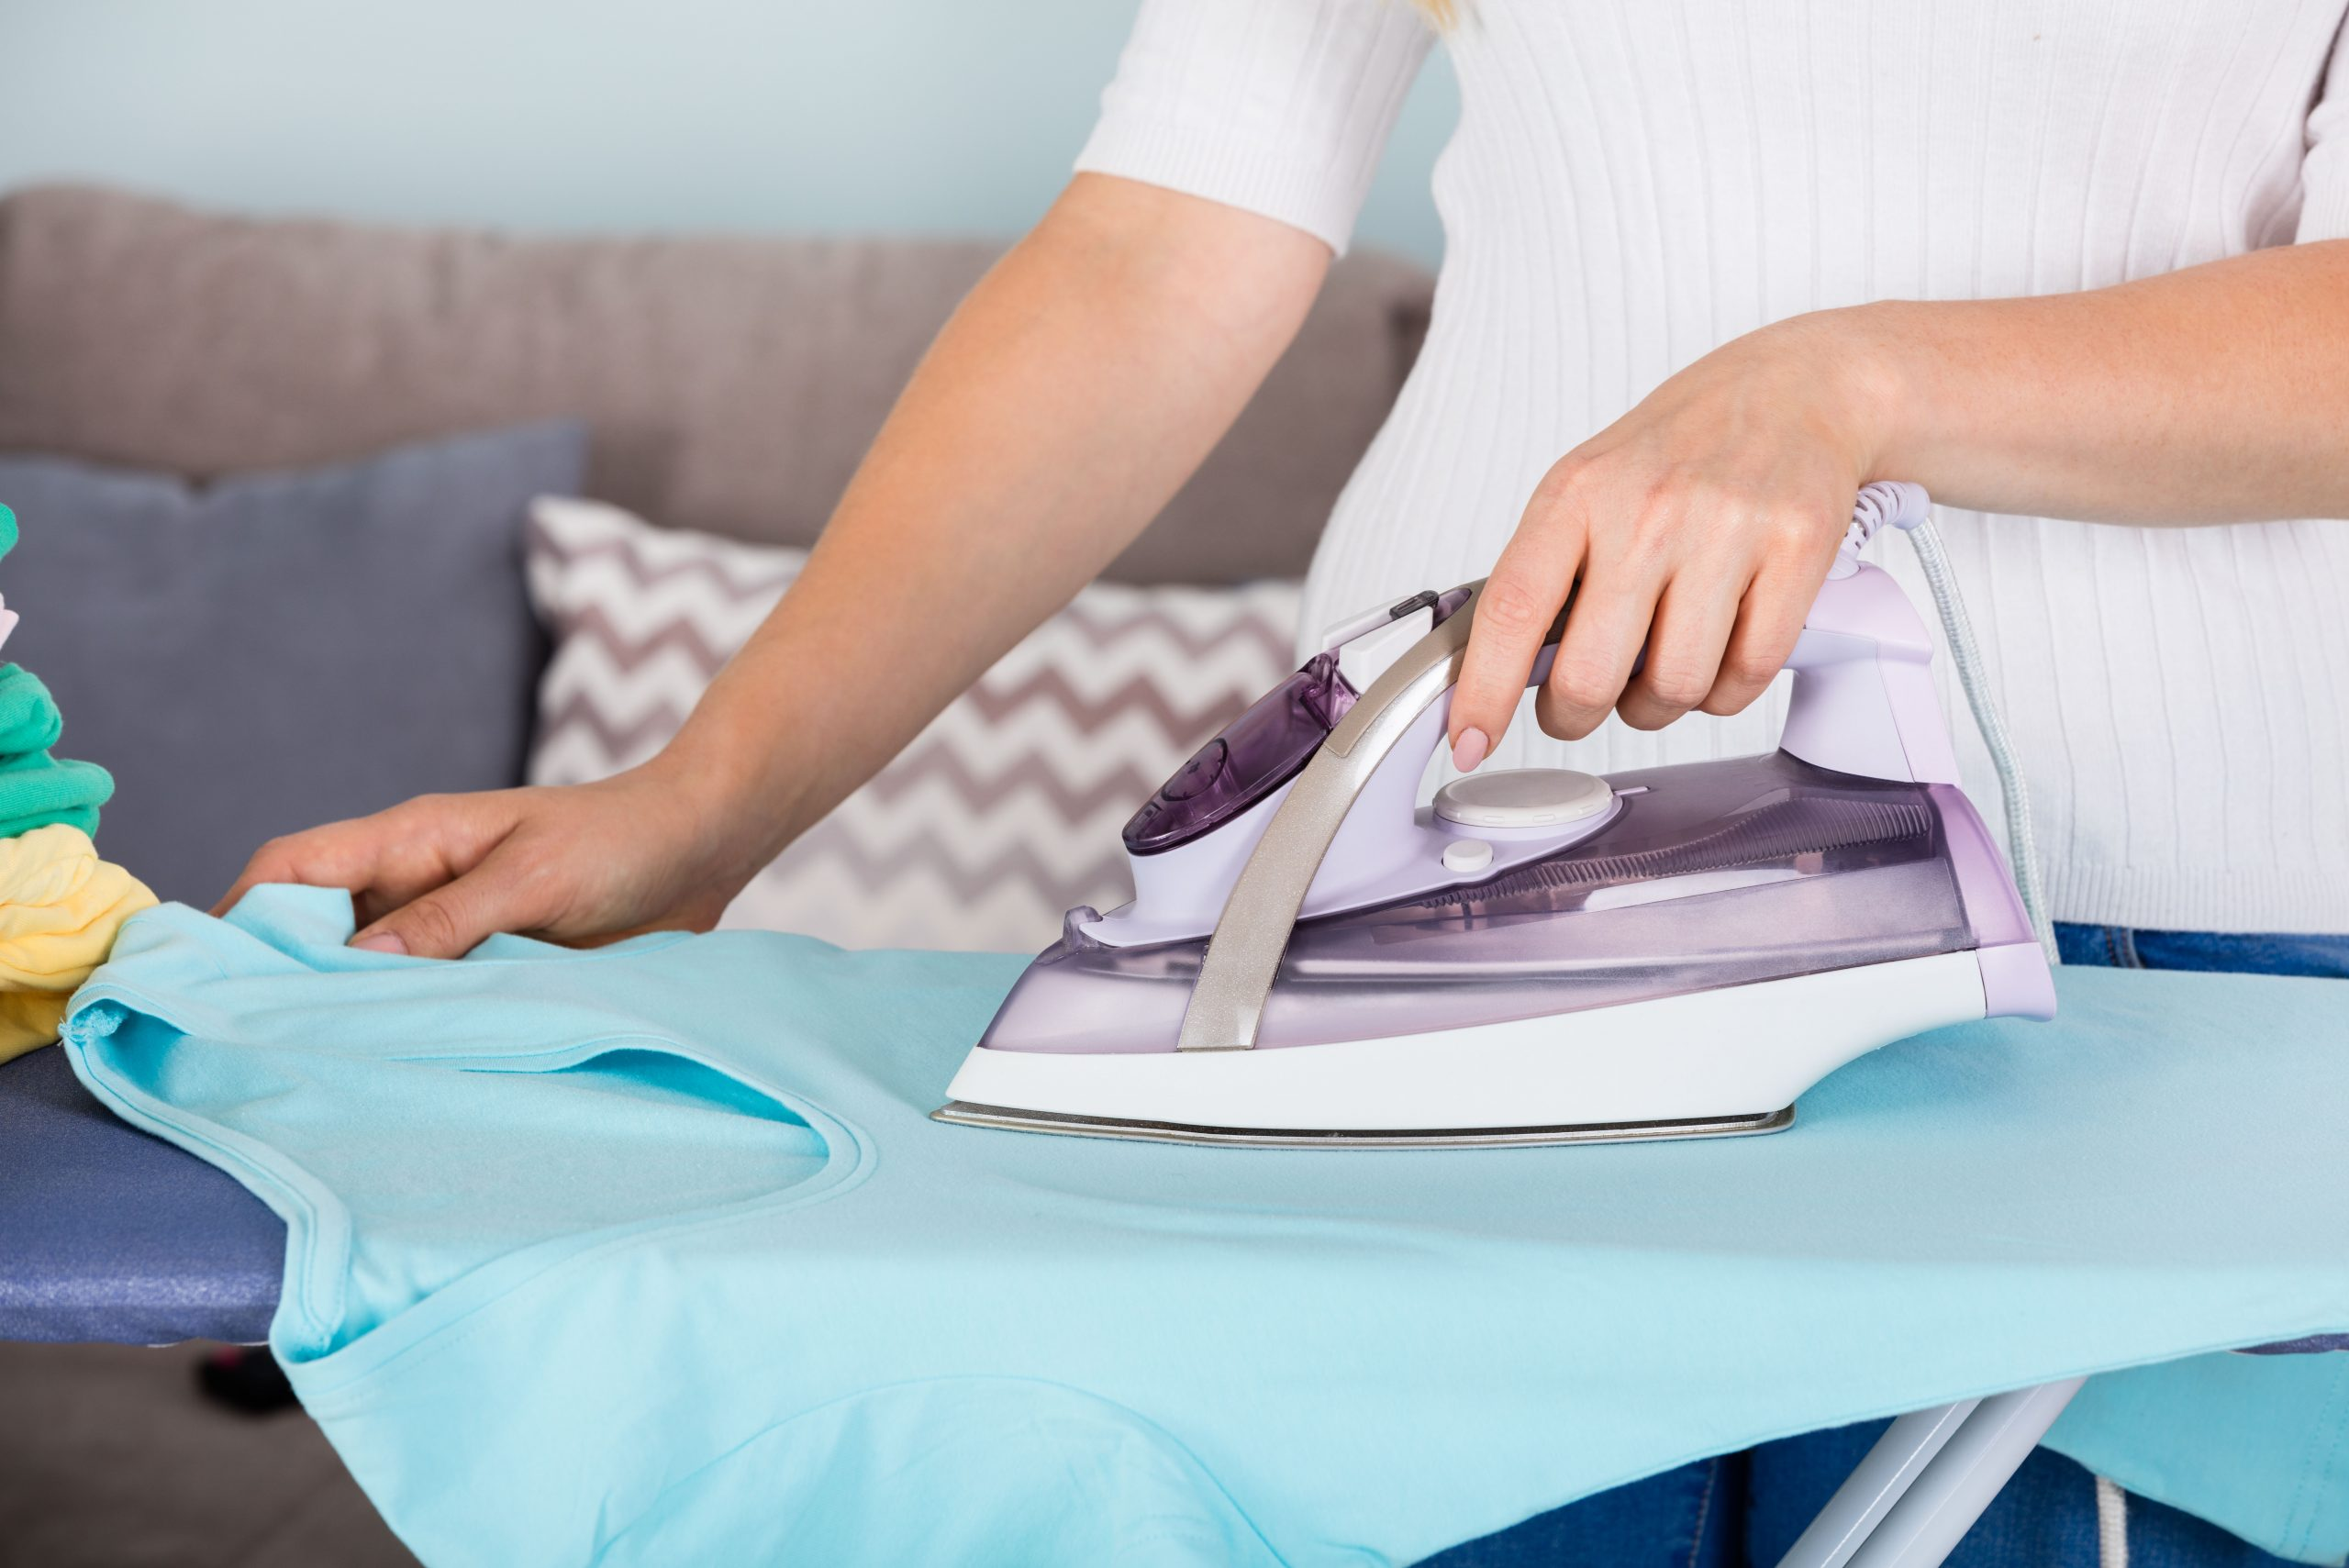 domestic helper ironing singapore image